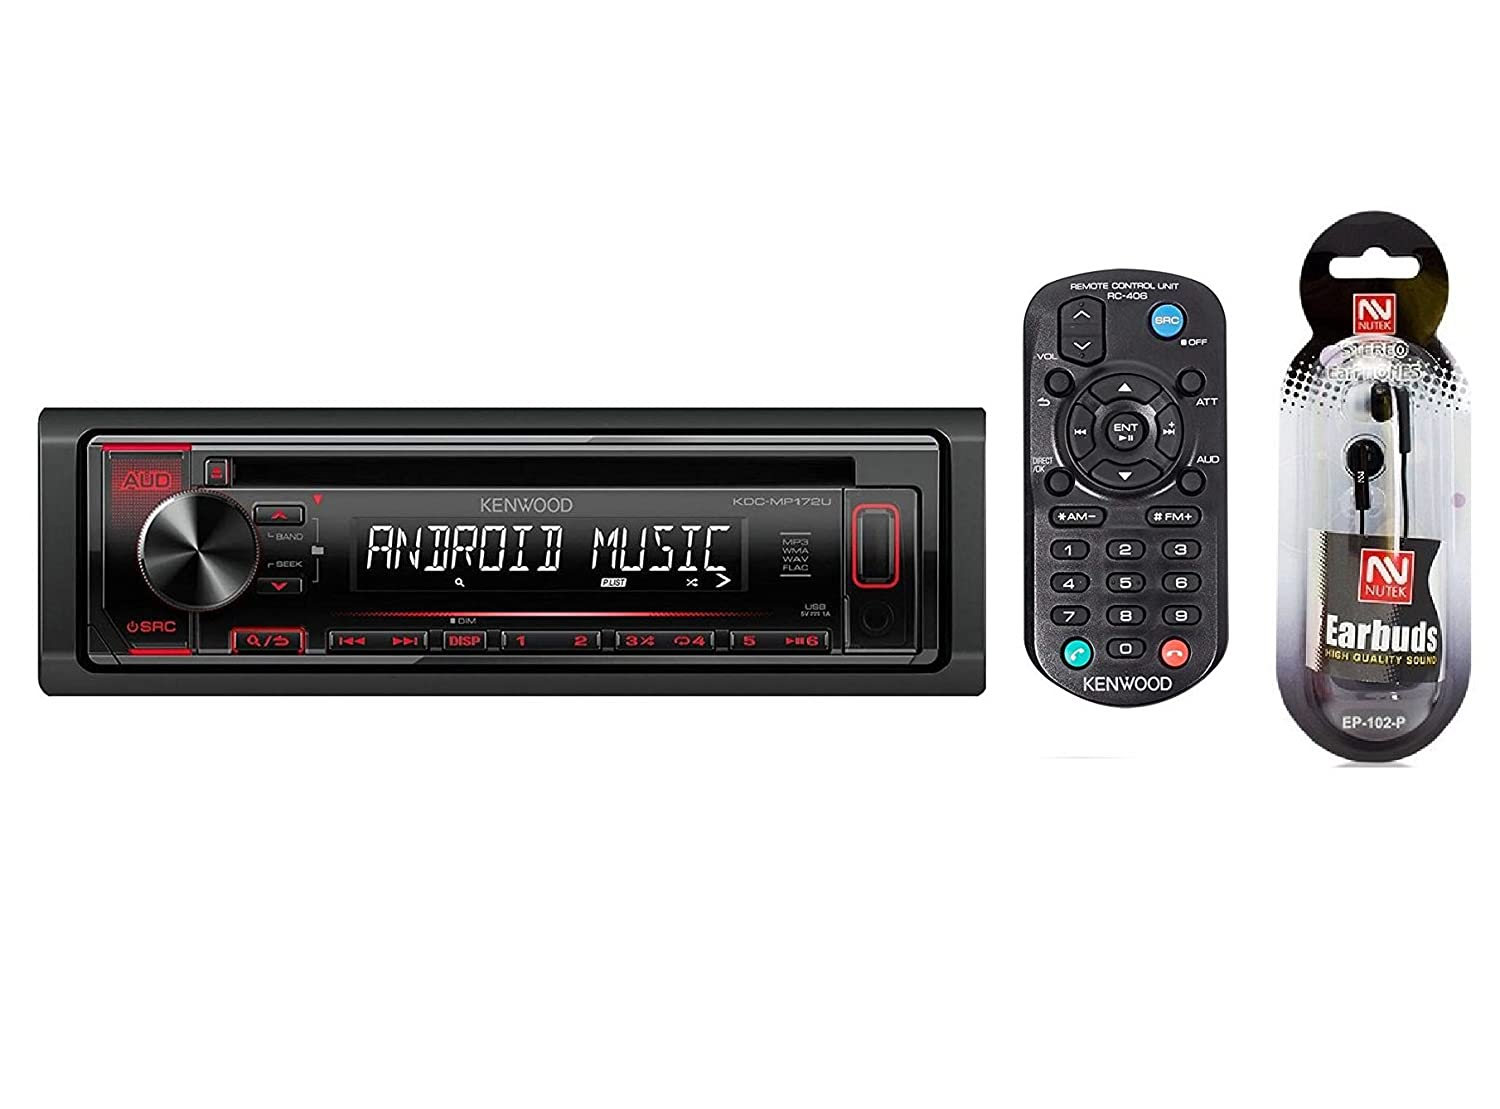 Kenwood Cd R Rw Mp3 Wma Receiver Am Fm Radio With Kdc 128 Wiring Harness Front Panel Usb And Aux Input Remote Control Includes A Free Pair Of Nutek Earbuds